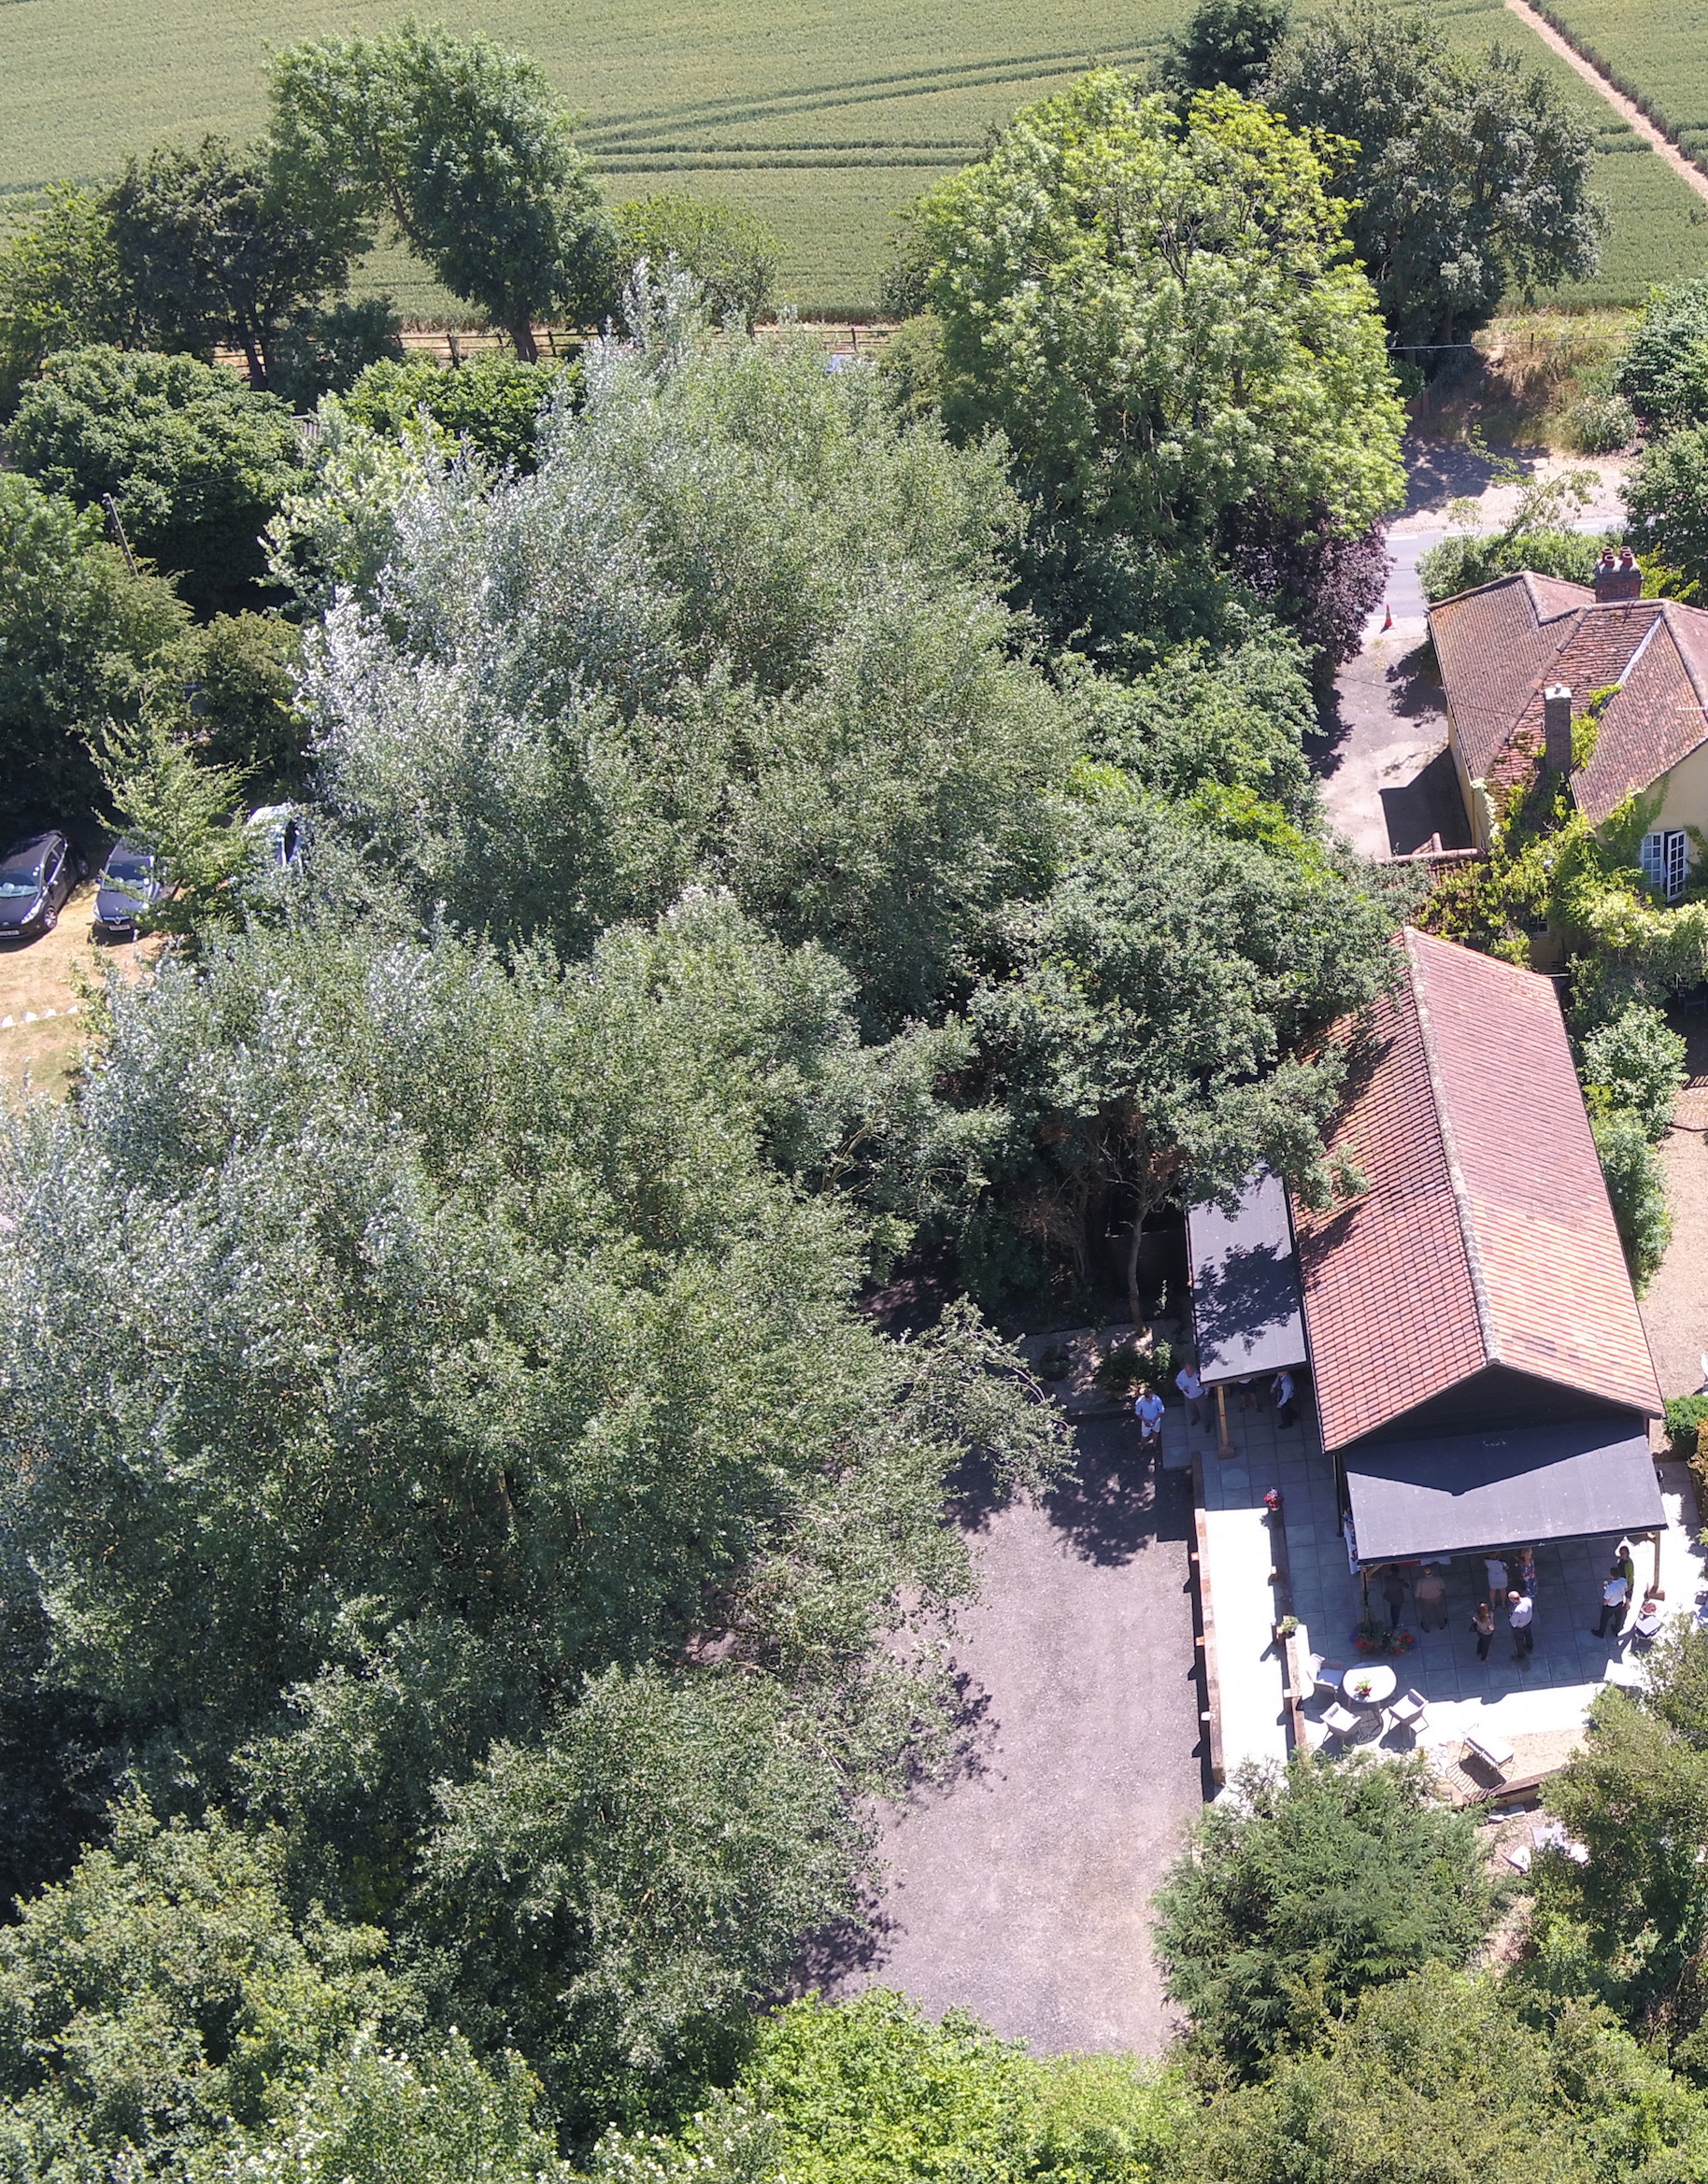 The Secret Sconery Venue in Essex is rather secret - aerial view